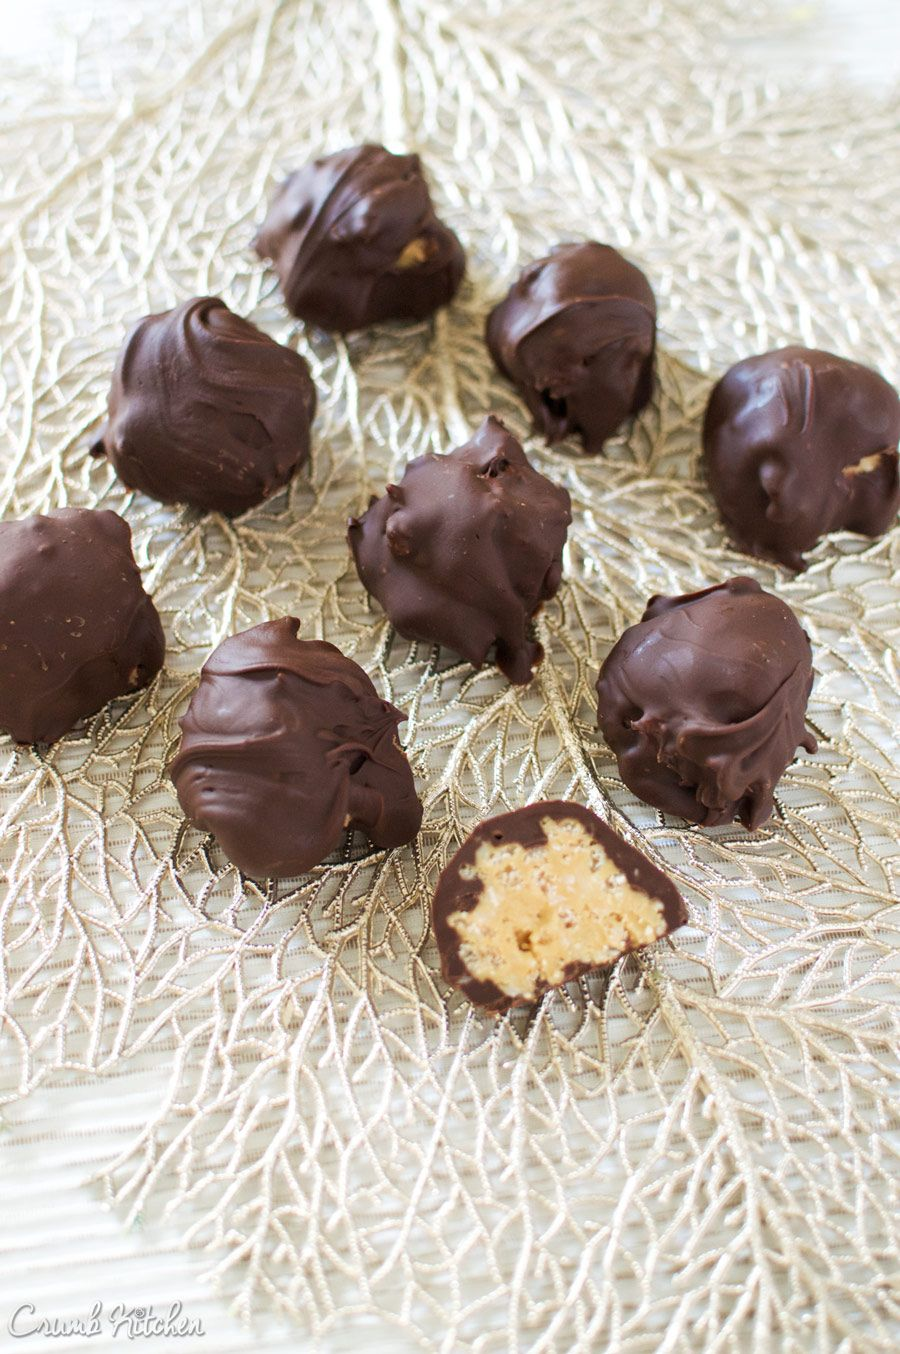 These Festive Chocolate Peanut Butter Balls with shredded coconut and rice krispies are the perfect bite-sized treat for the holidays. | Crumb Kitchen #peanutbutterballswithricekrispies